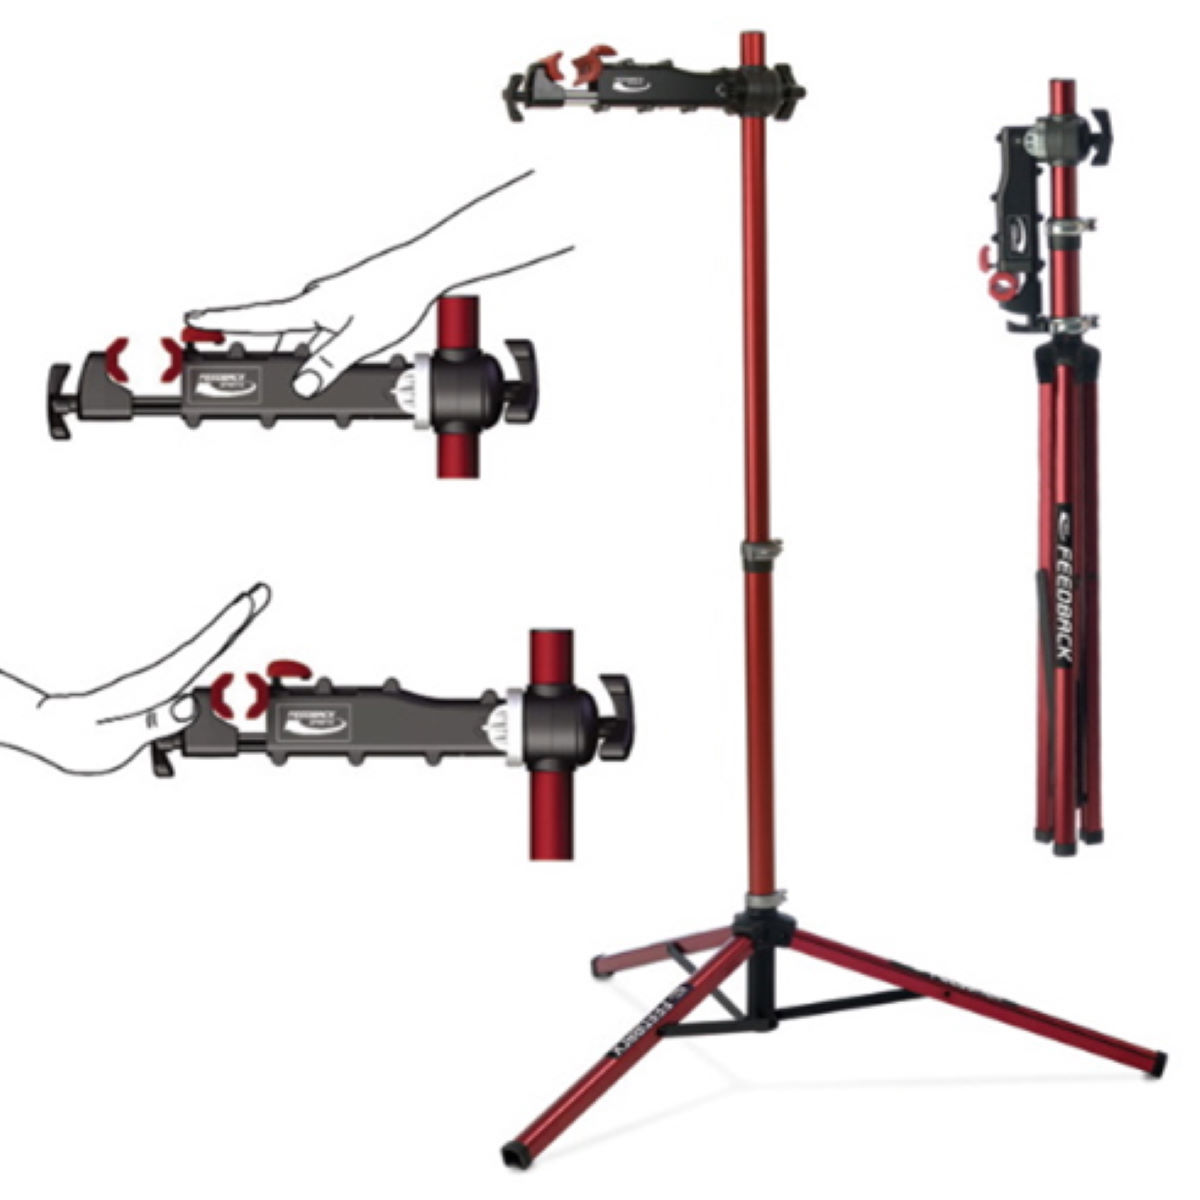 Feedback Sports Pro Elite Workstand - Caballetes de taller